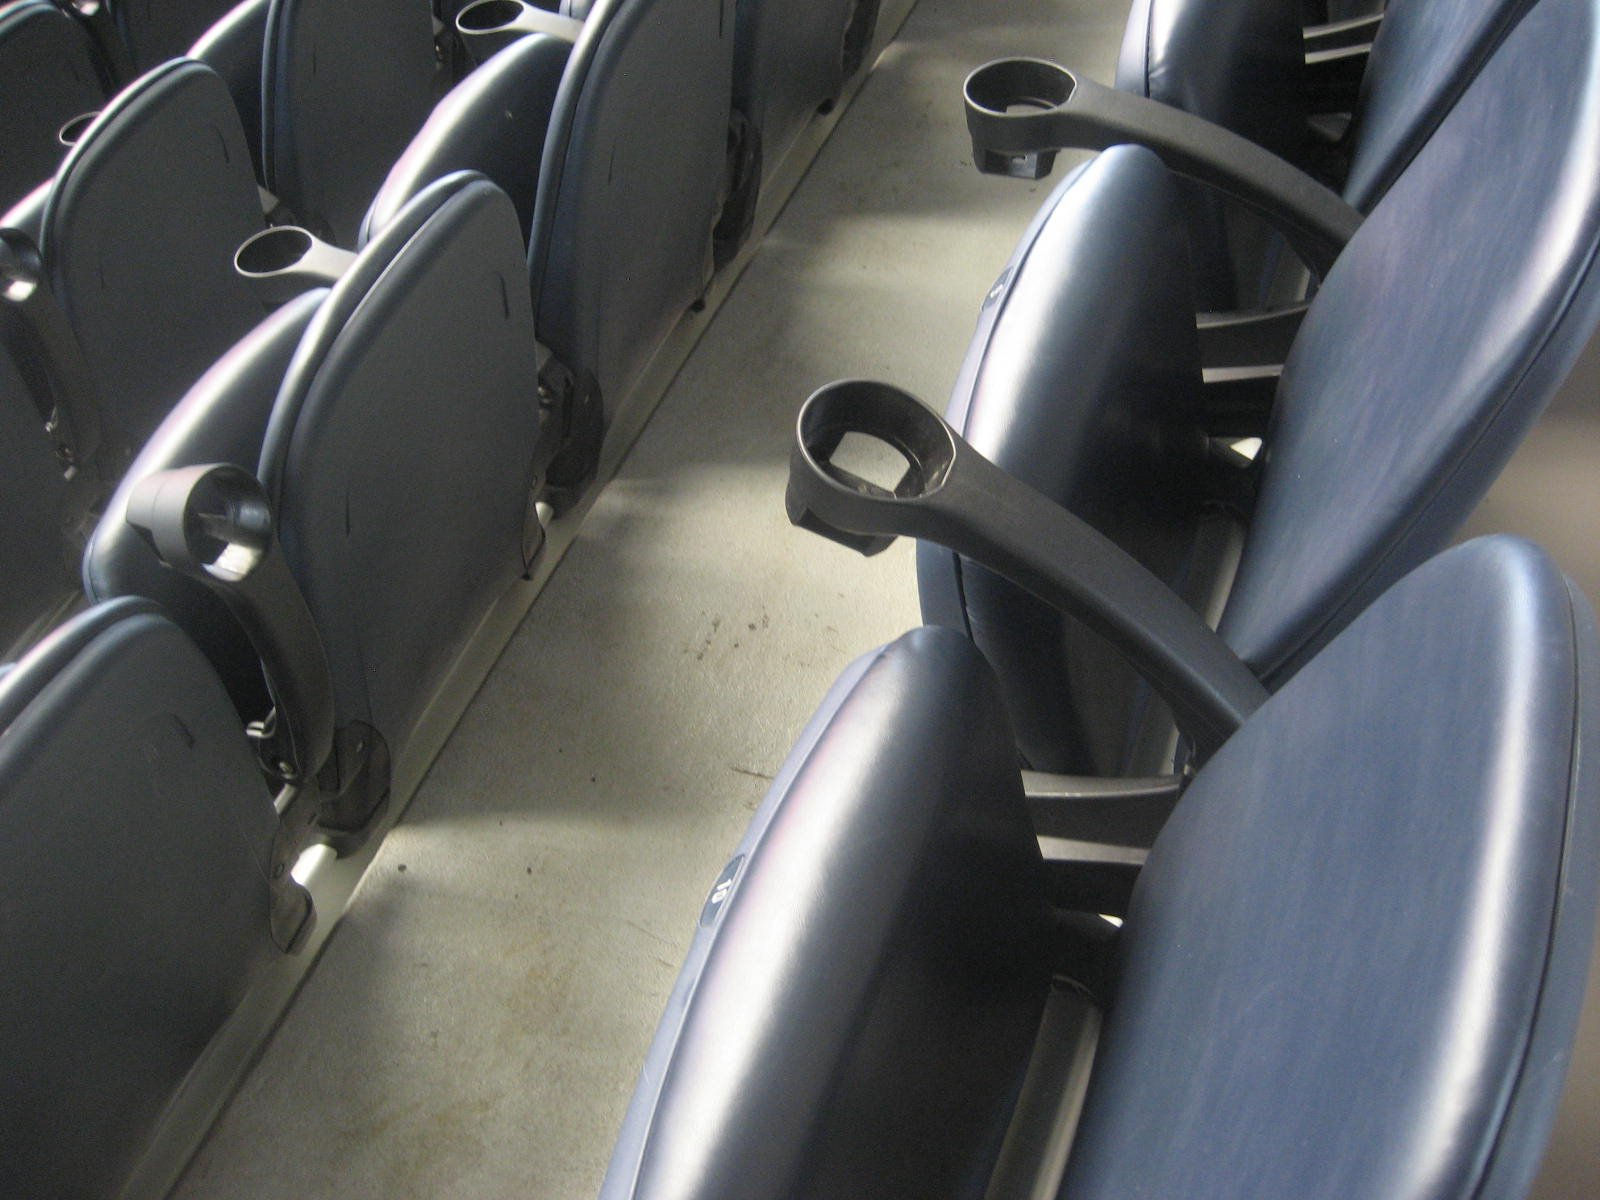 Padded seats with cupholders